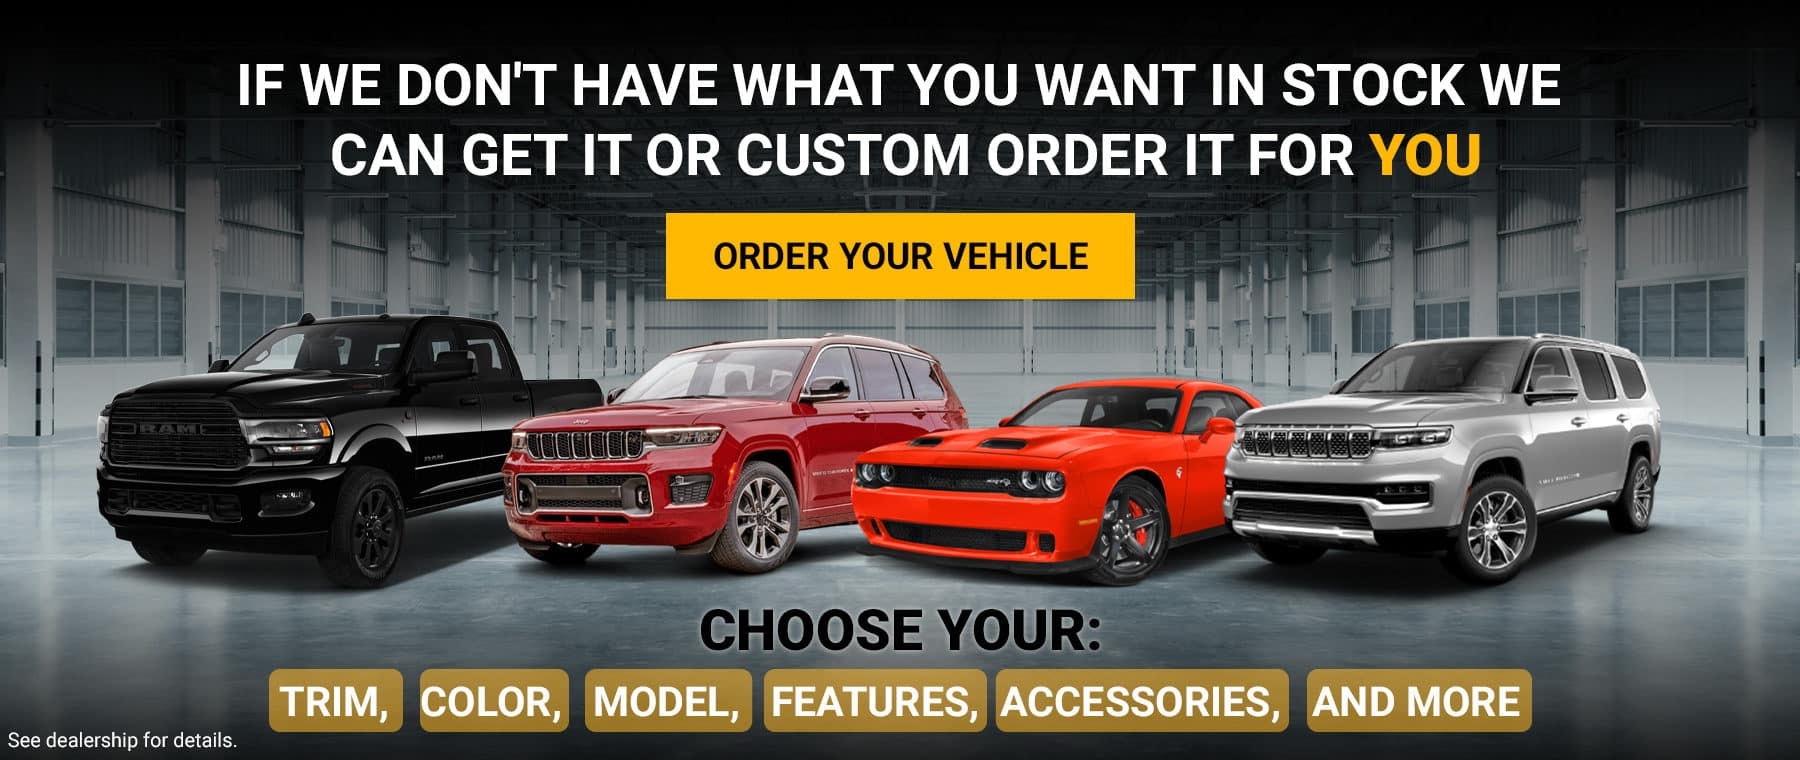 Reserve Your Vehicle